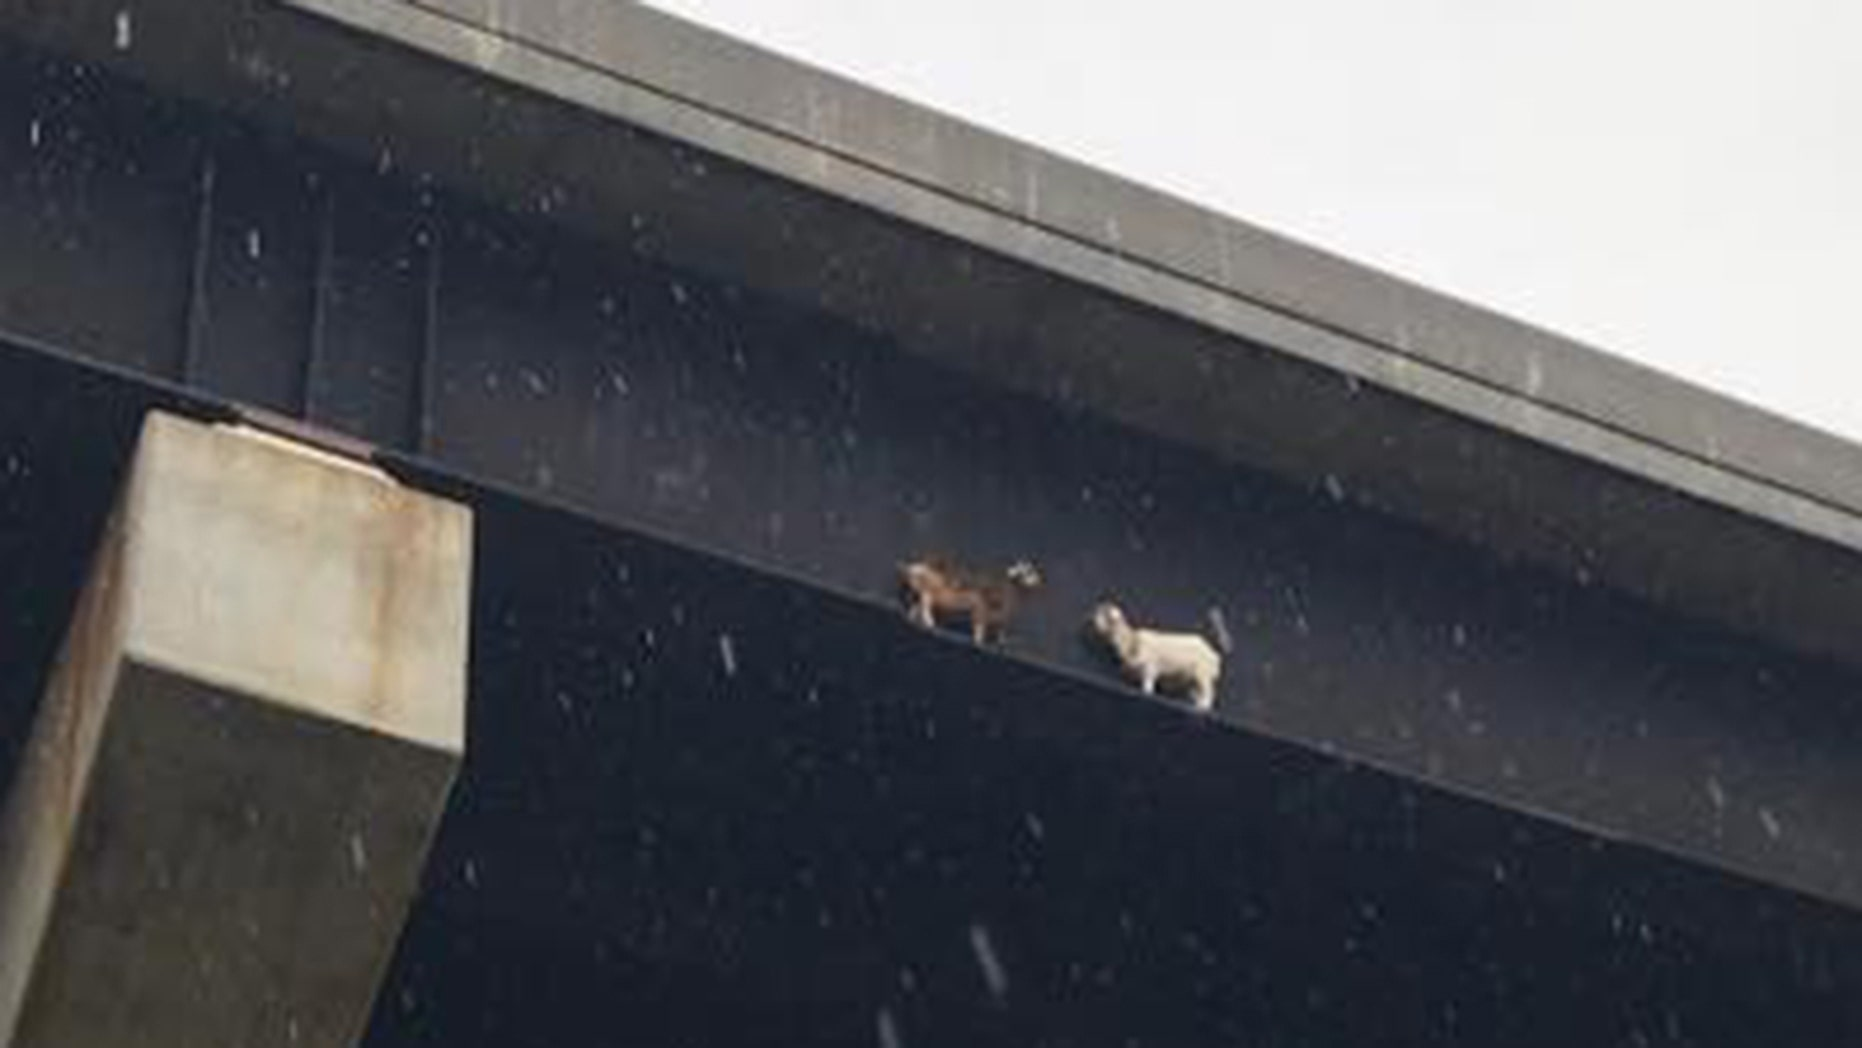 Two goats were found stranded on a bridge beam in western Pennsylvania on Tuesday.